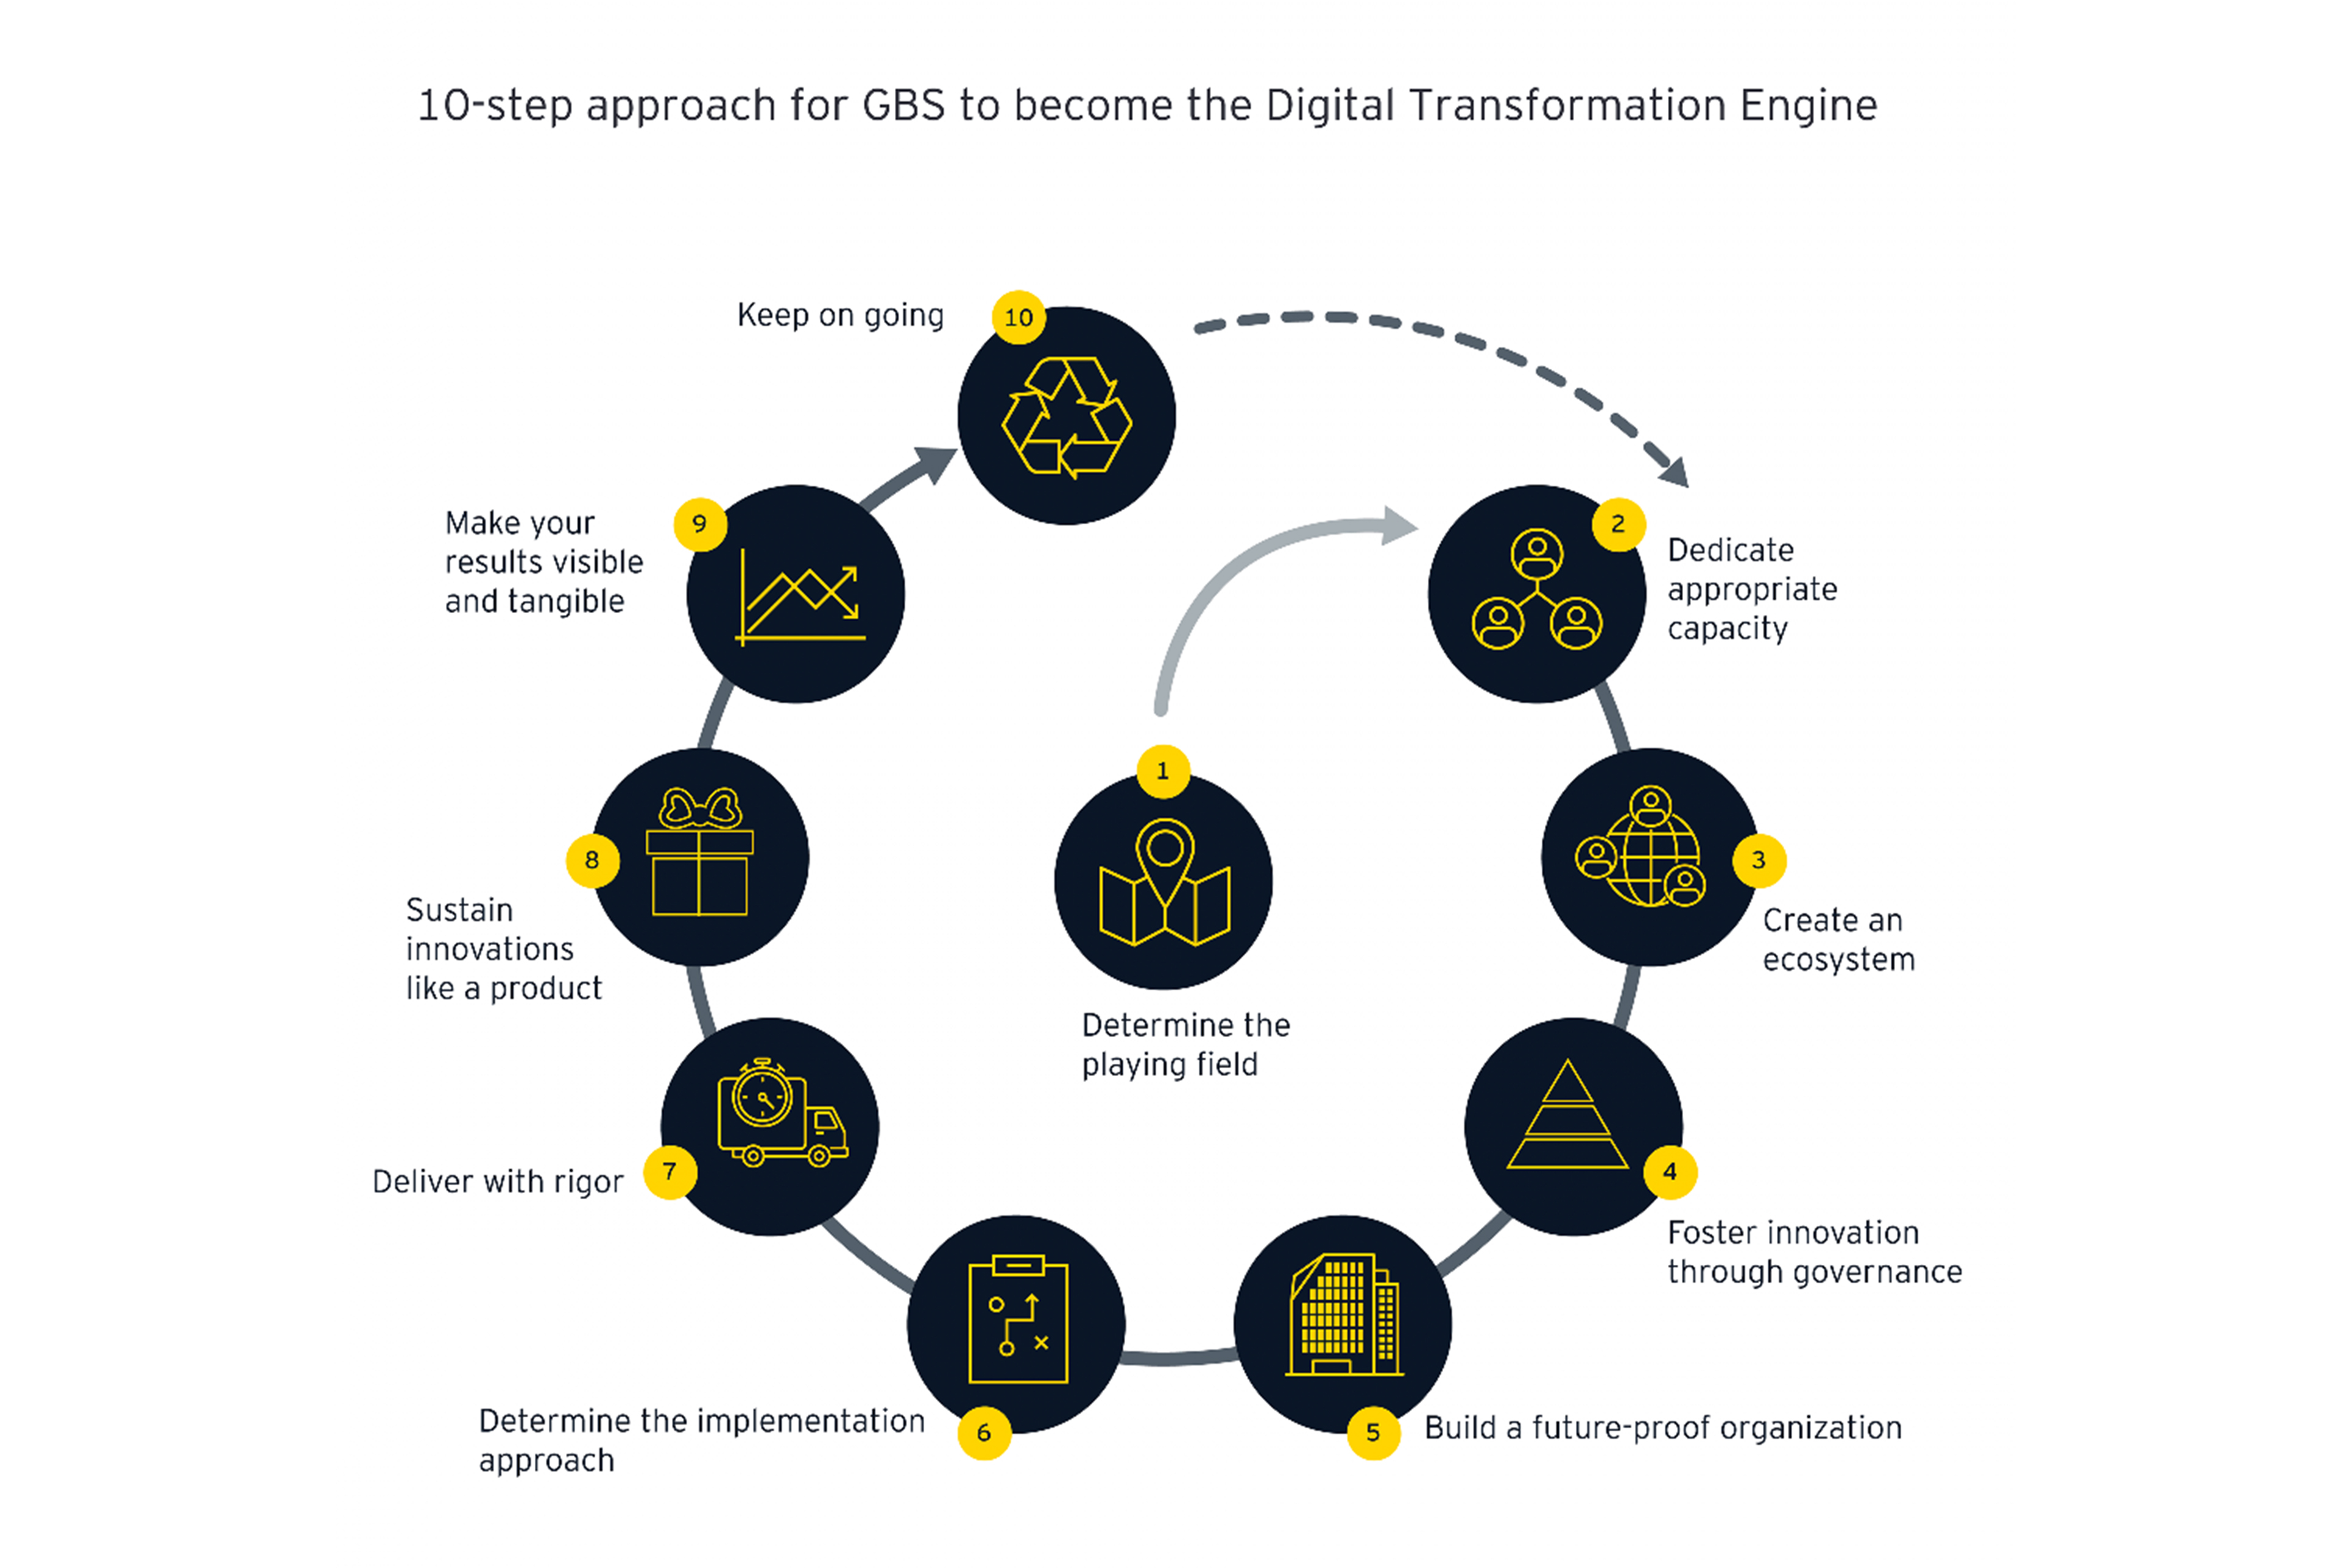 10-step approach for GBS to become the Digital Transformation Engine